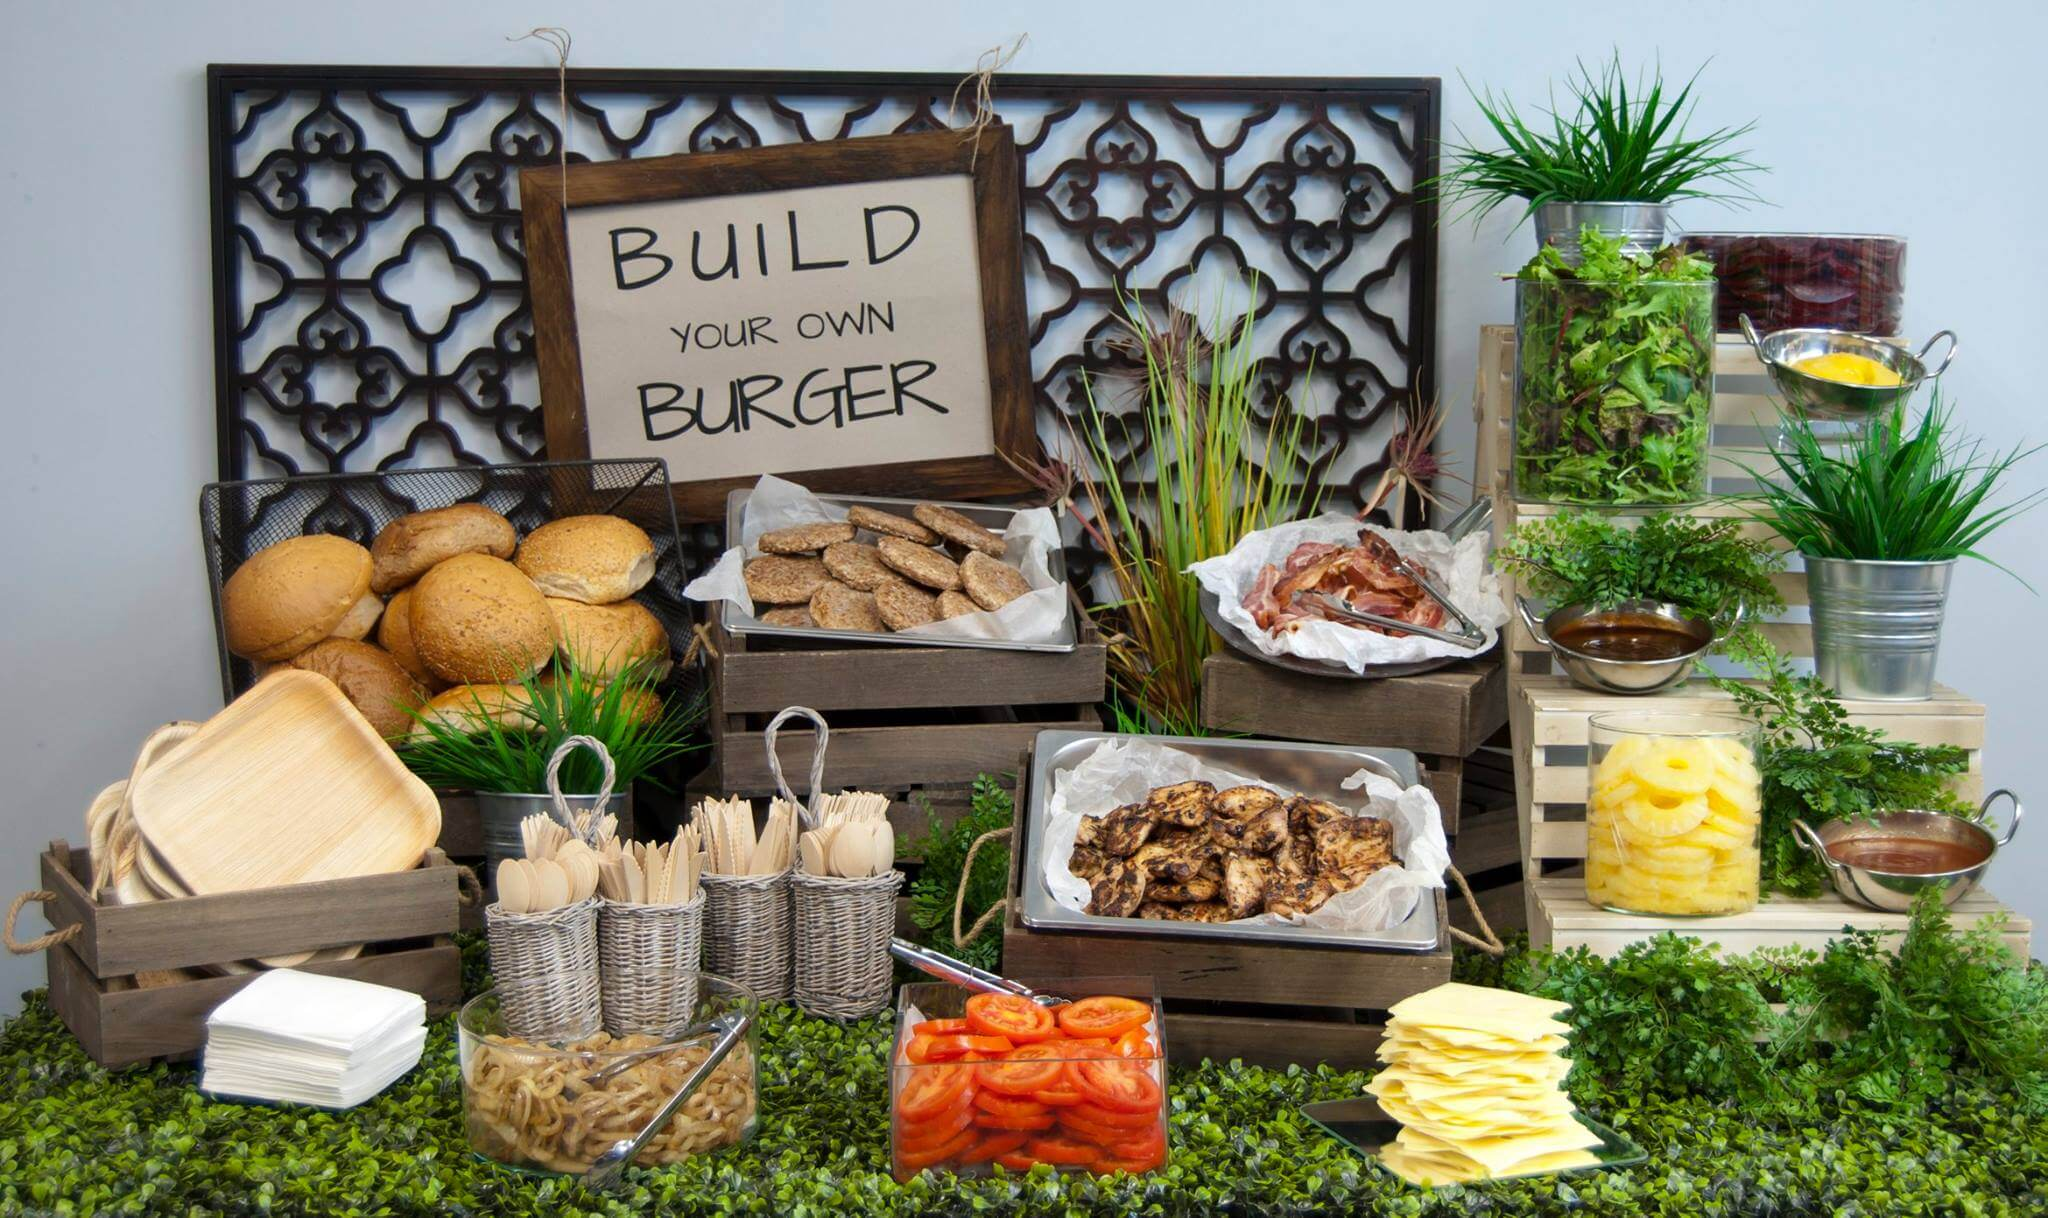 Build a burger - Food Trends